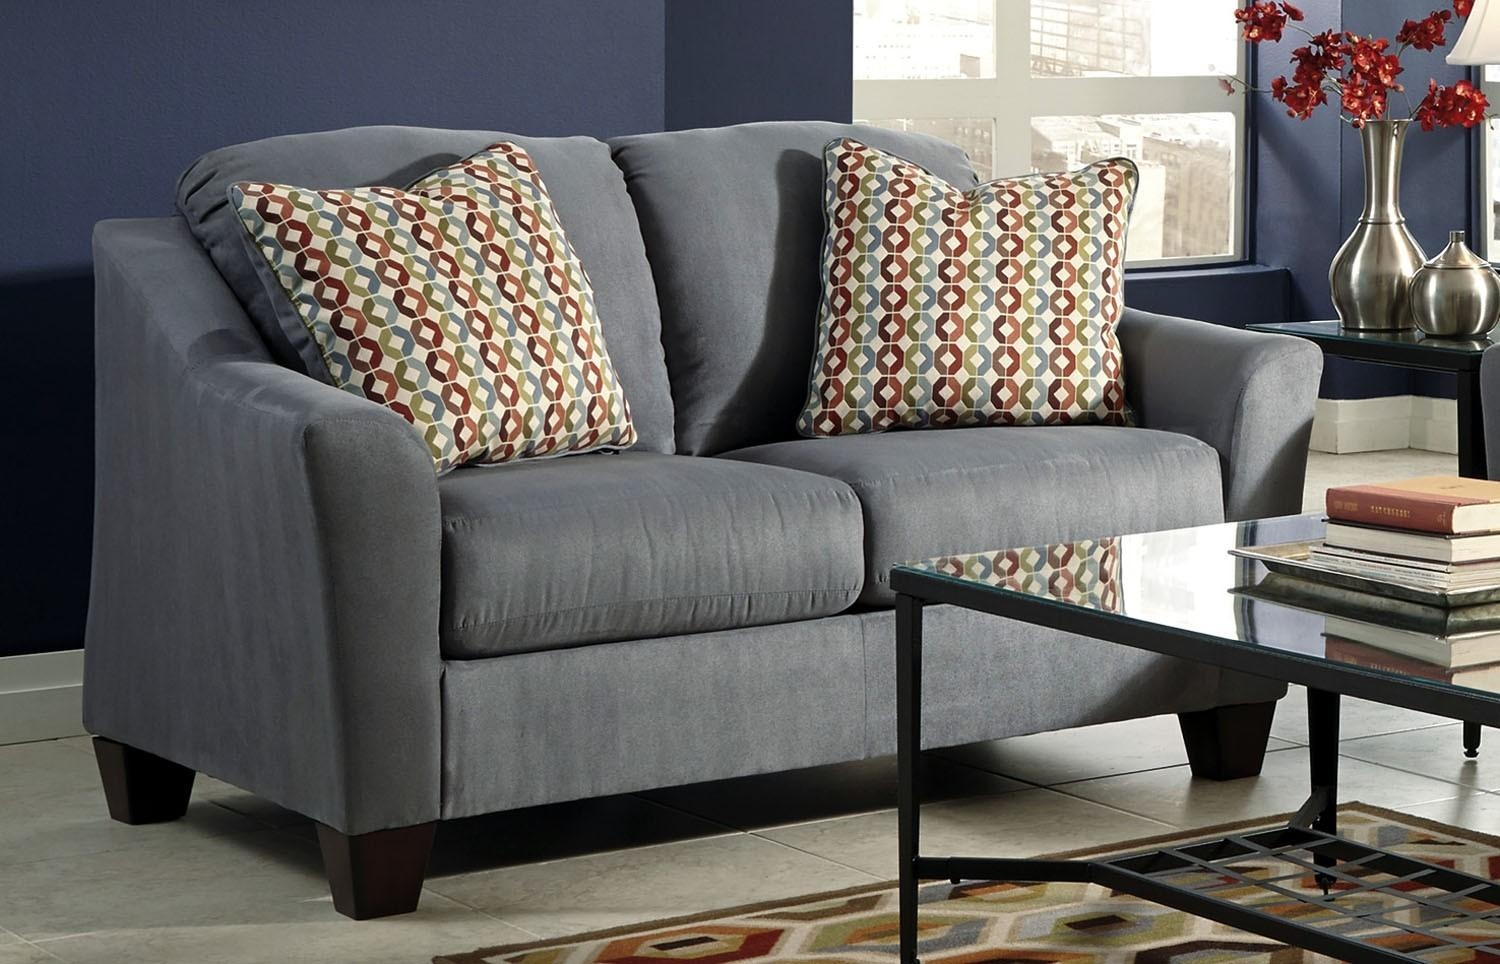 Hannin Lagoon Loveseat | Ashley Furniture | Orange County, Ca With Regard To Sofa Orange County (Image 5 of 20)